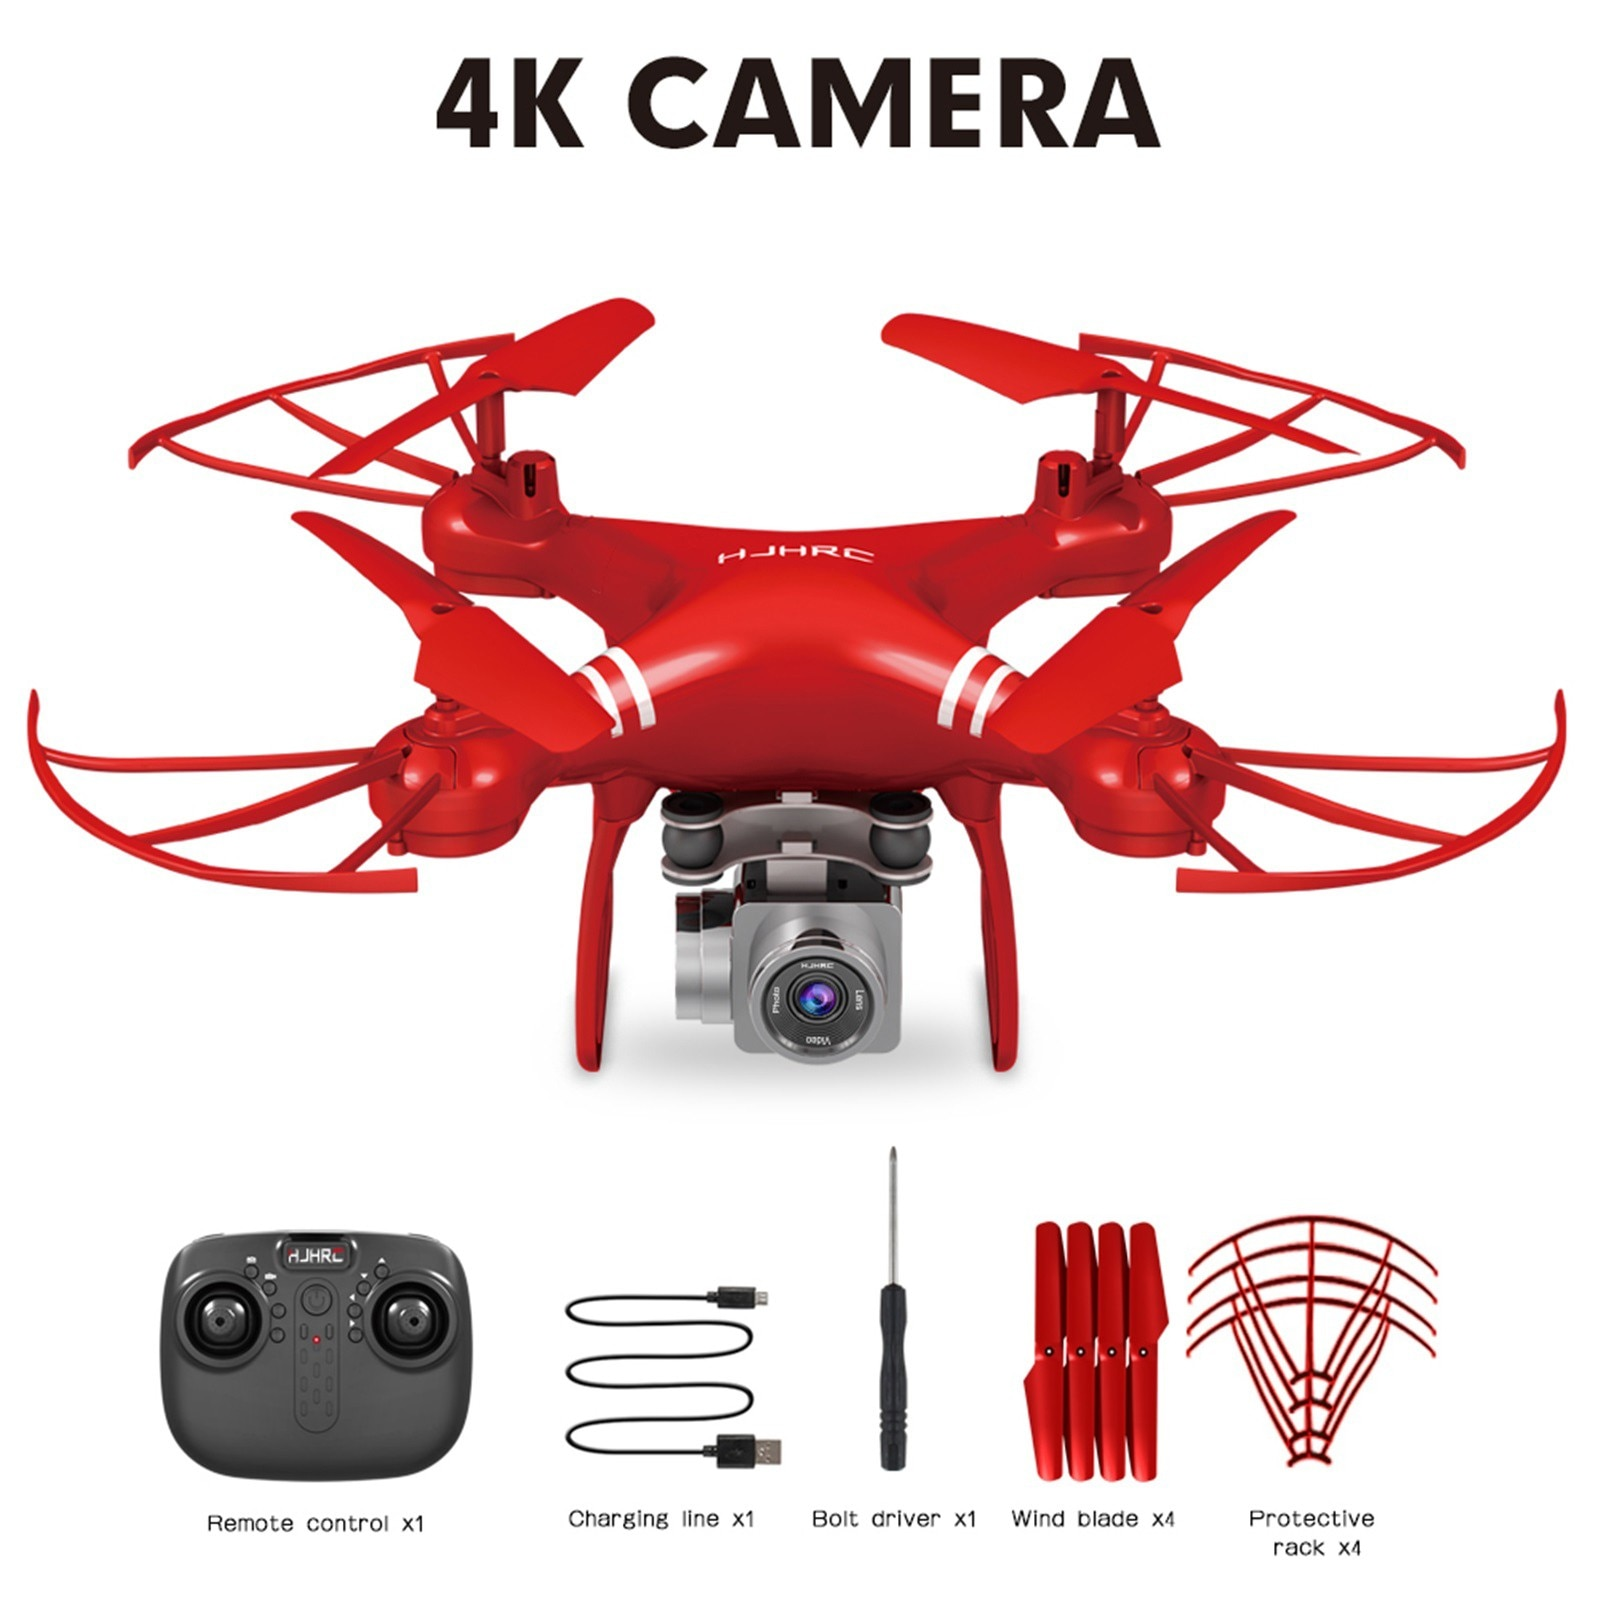 H43337230b2fa4319bfc7fbc555a769ccG - Hjhrc Four-axis Aerial Photography Aircraft Drone With Camera Hd 4k Wifi Fpv Foldable Drone Height Holding Headless Quadcopter